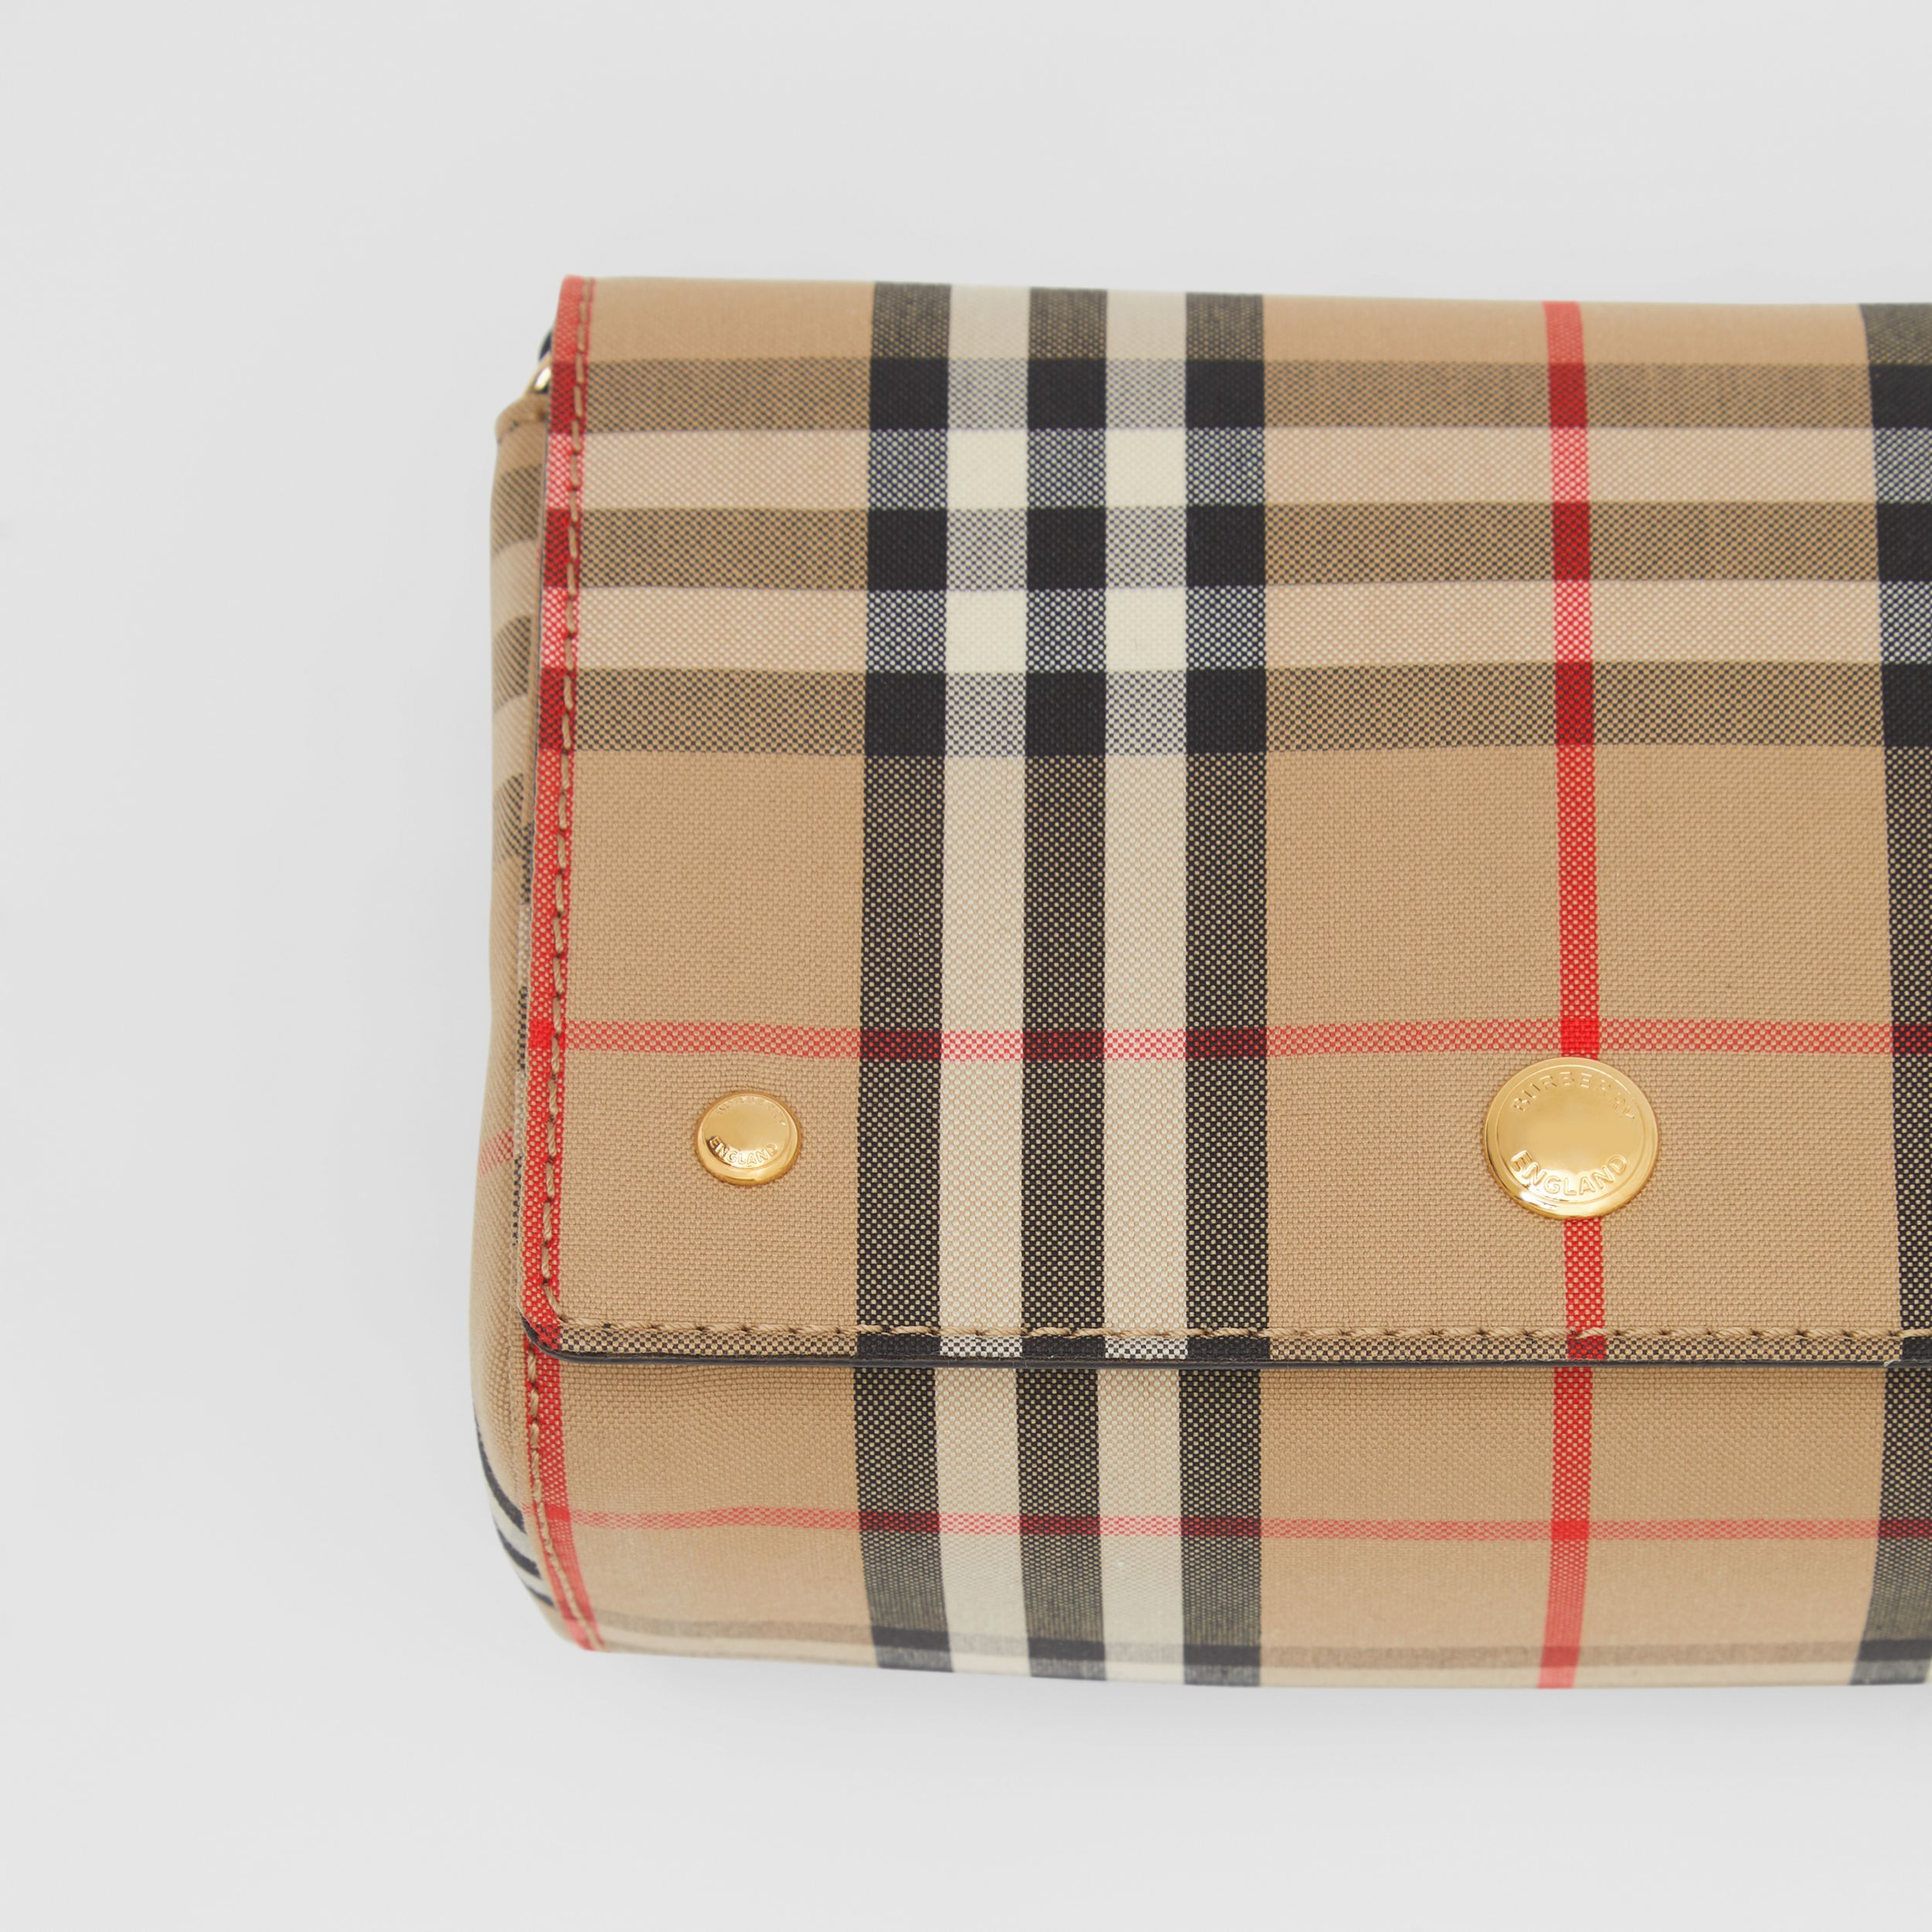 Small Vintage Check and Leather Crossbody Bag in Archive Beige - Women | Burberry United Kingdom - 2